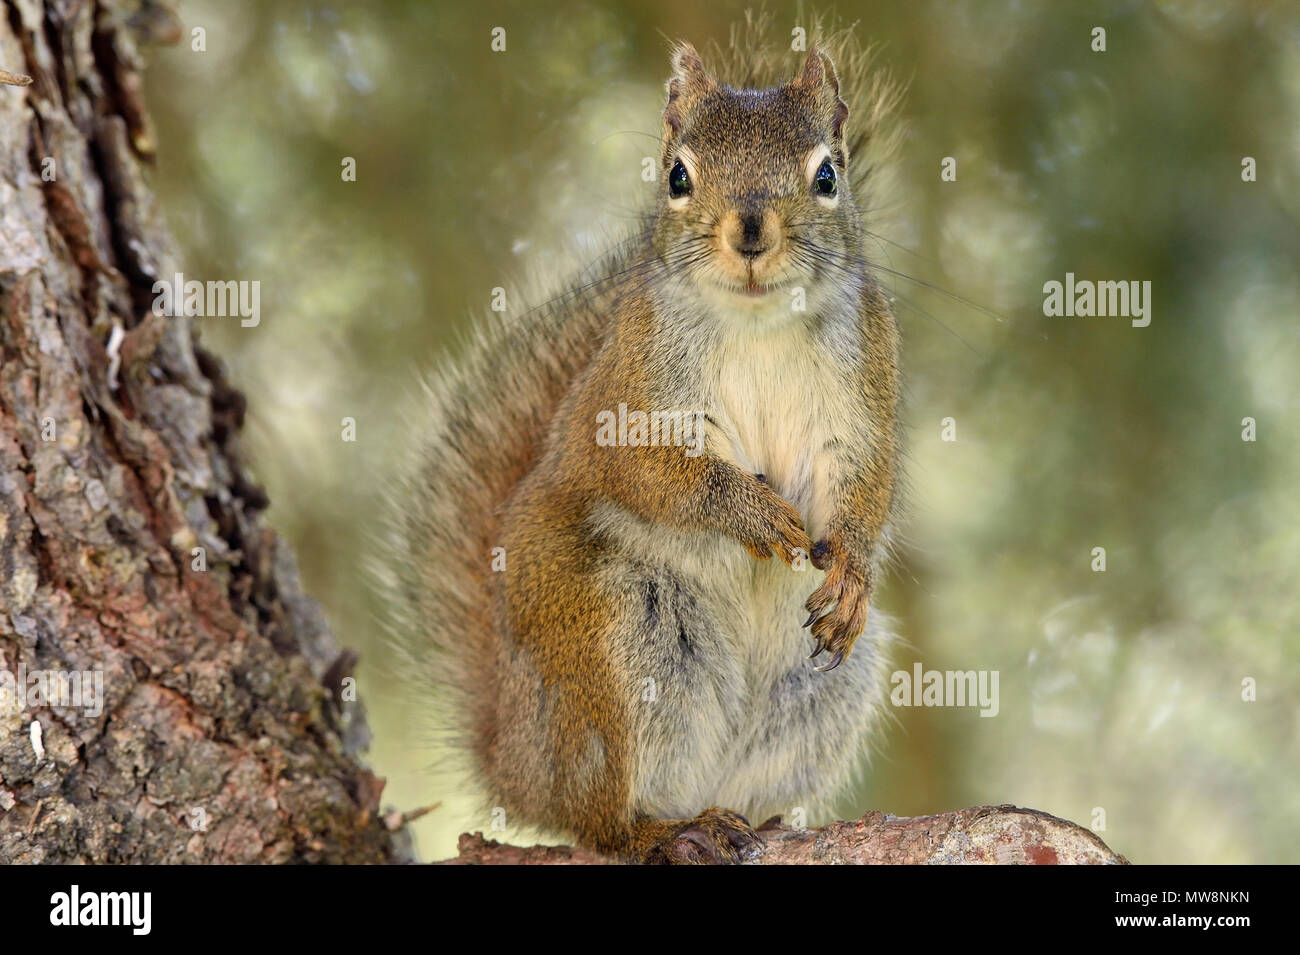 A wild red squirrel 'Tamiasciurus hudsonicus'; sitting upright on branch of a spruce tree in rural Alberta Canada - Stock Image